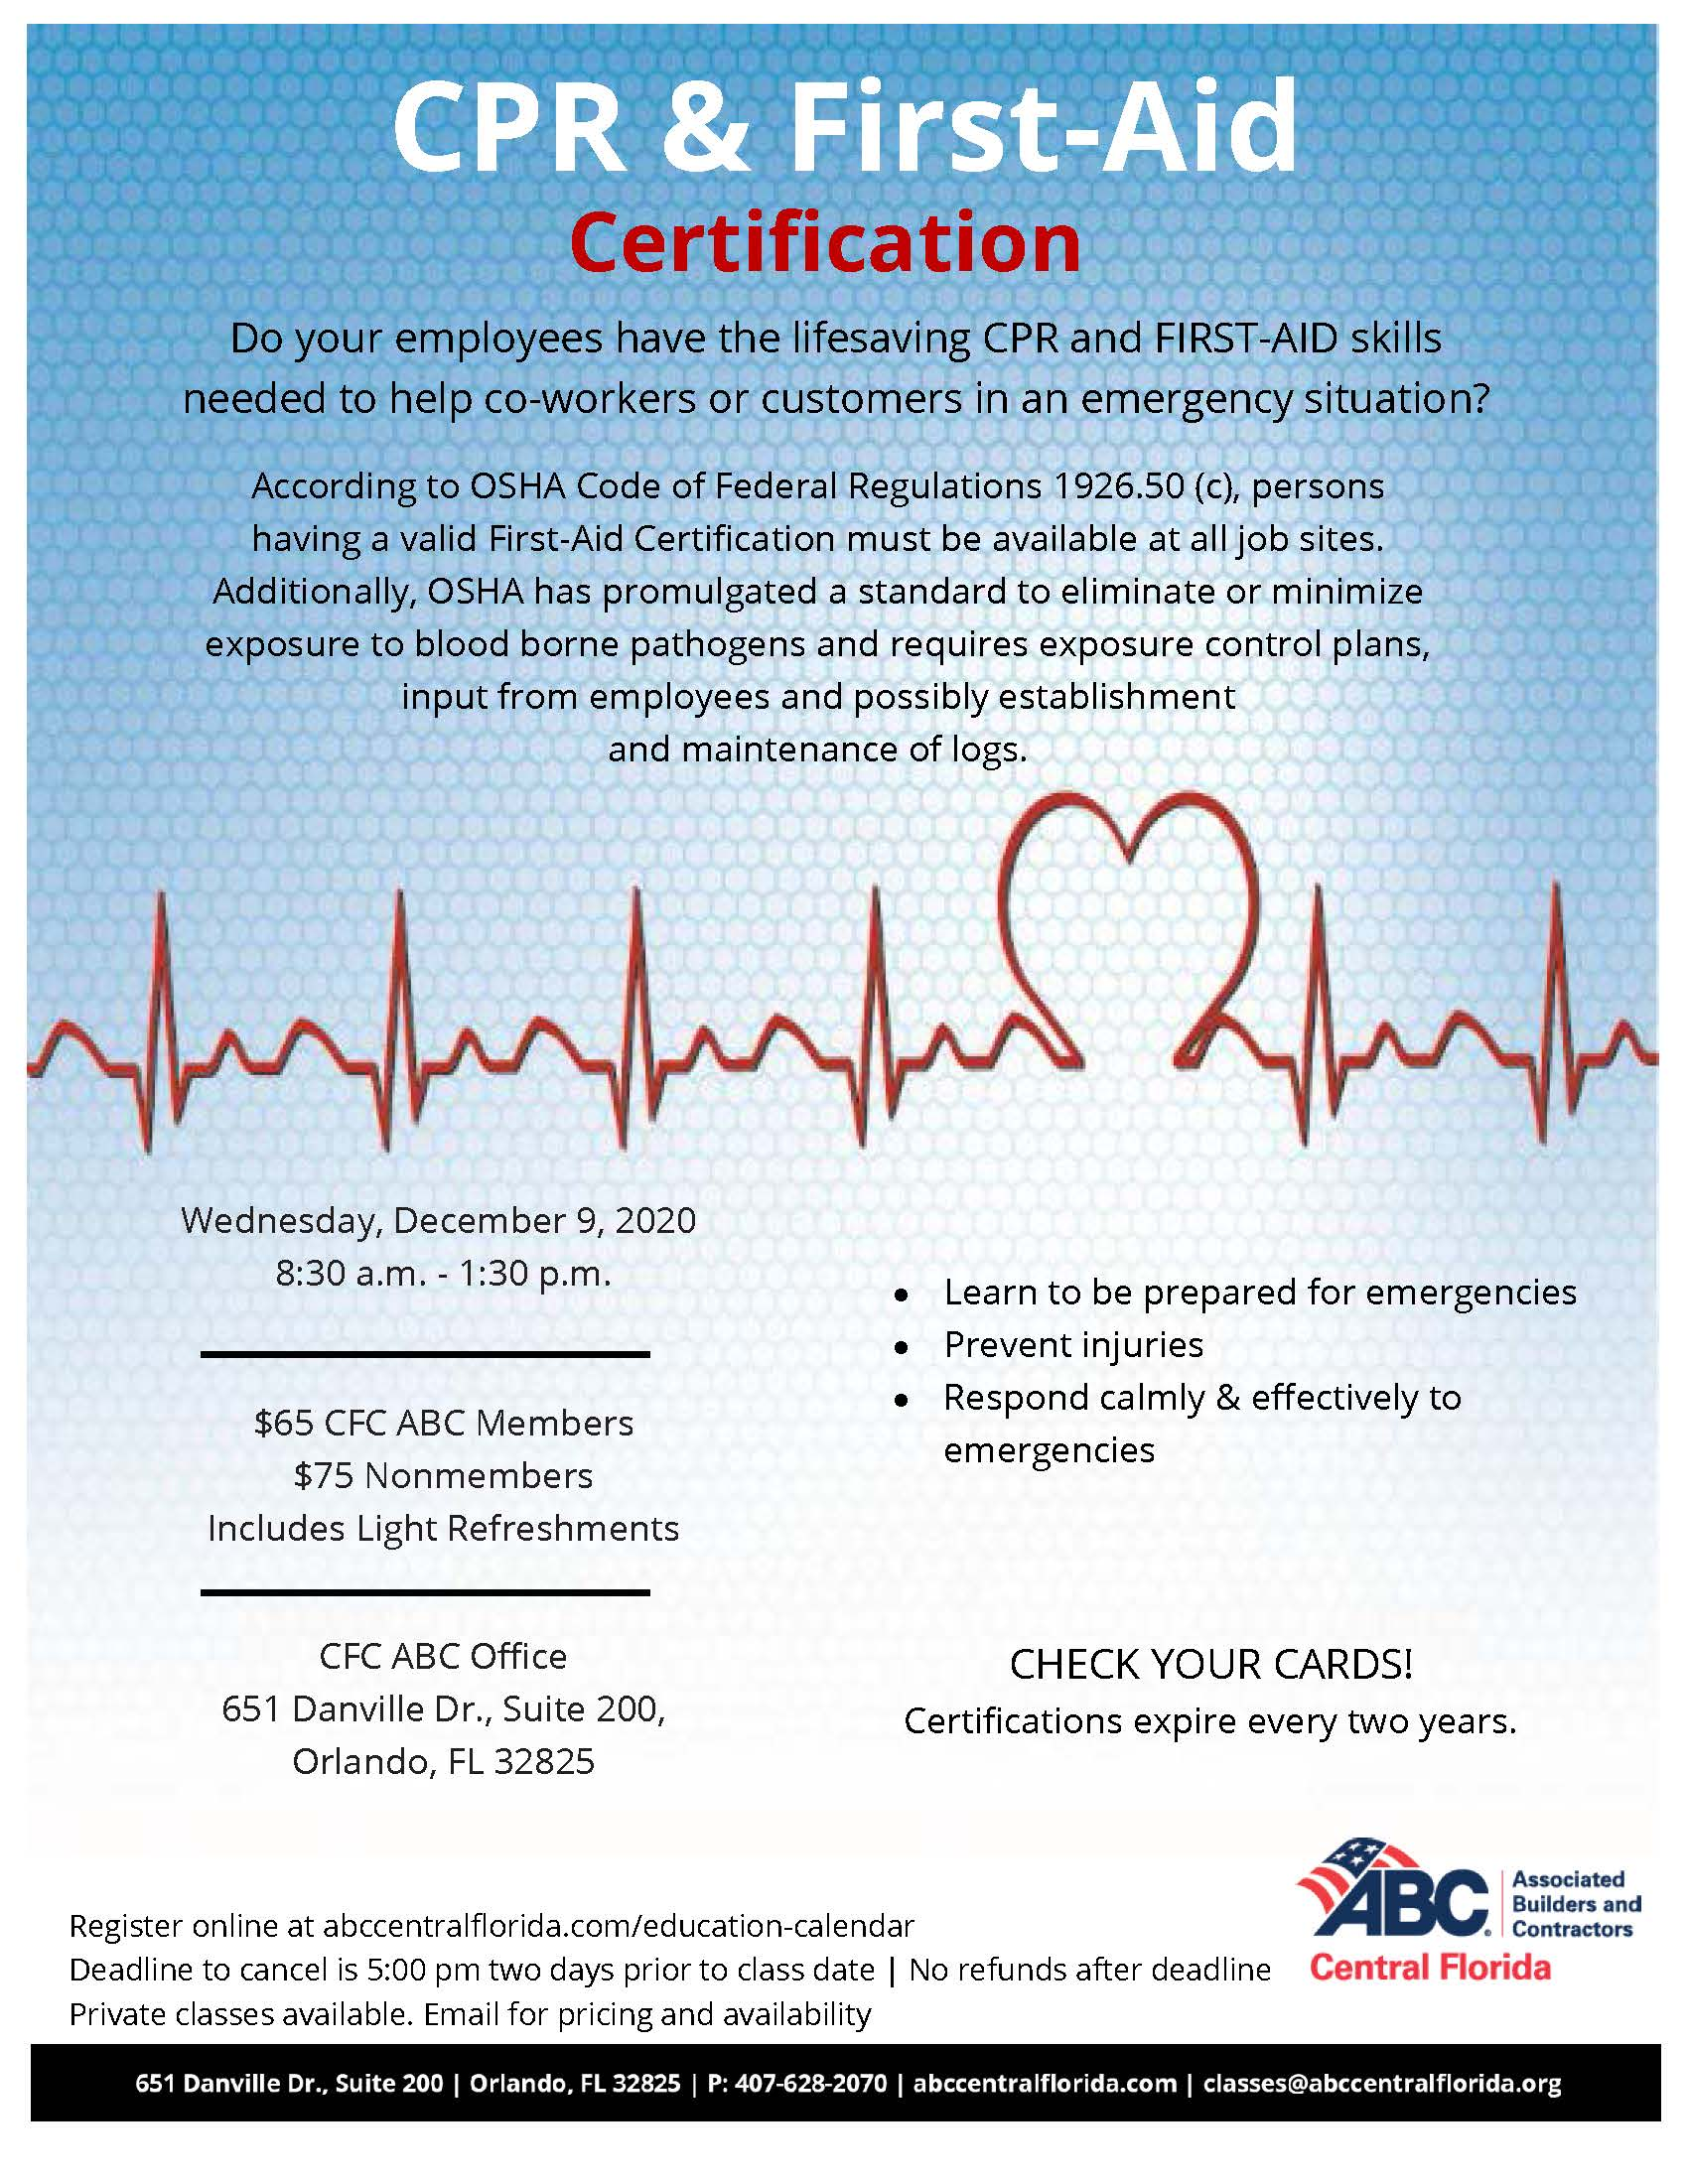 CPR & First Aid Certification - December 9, 2020